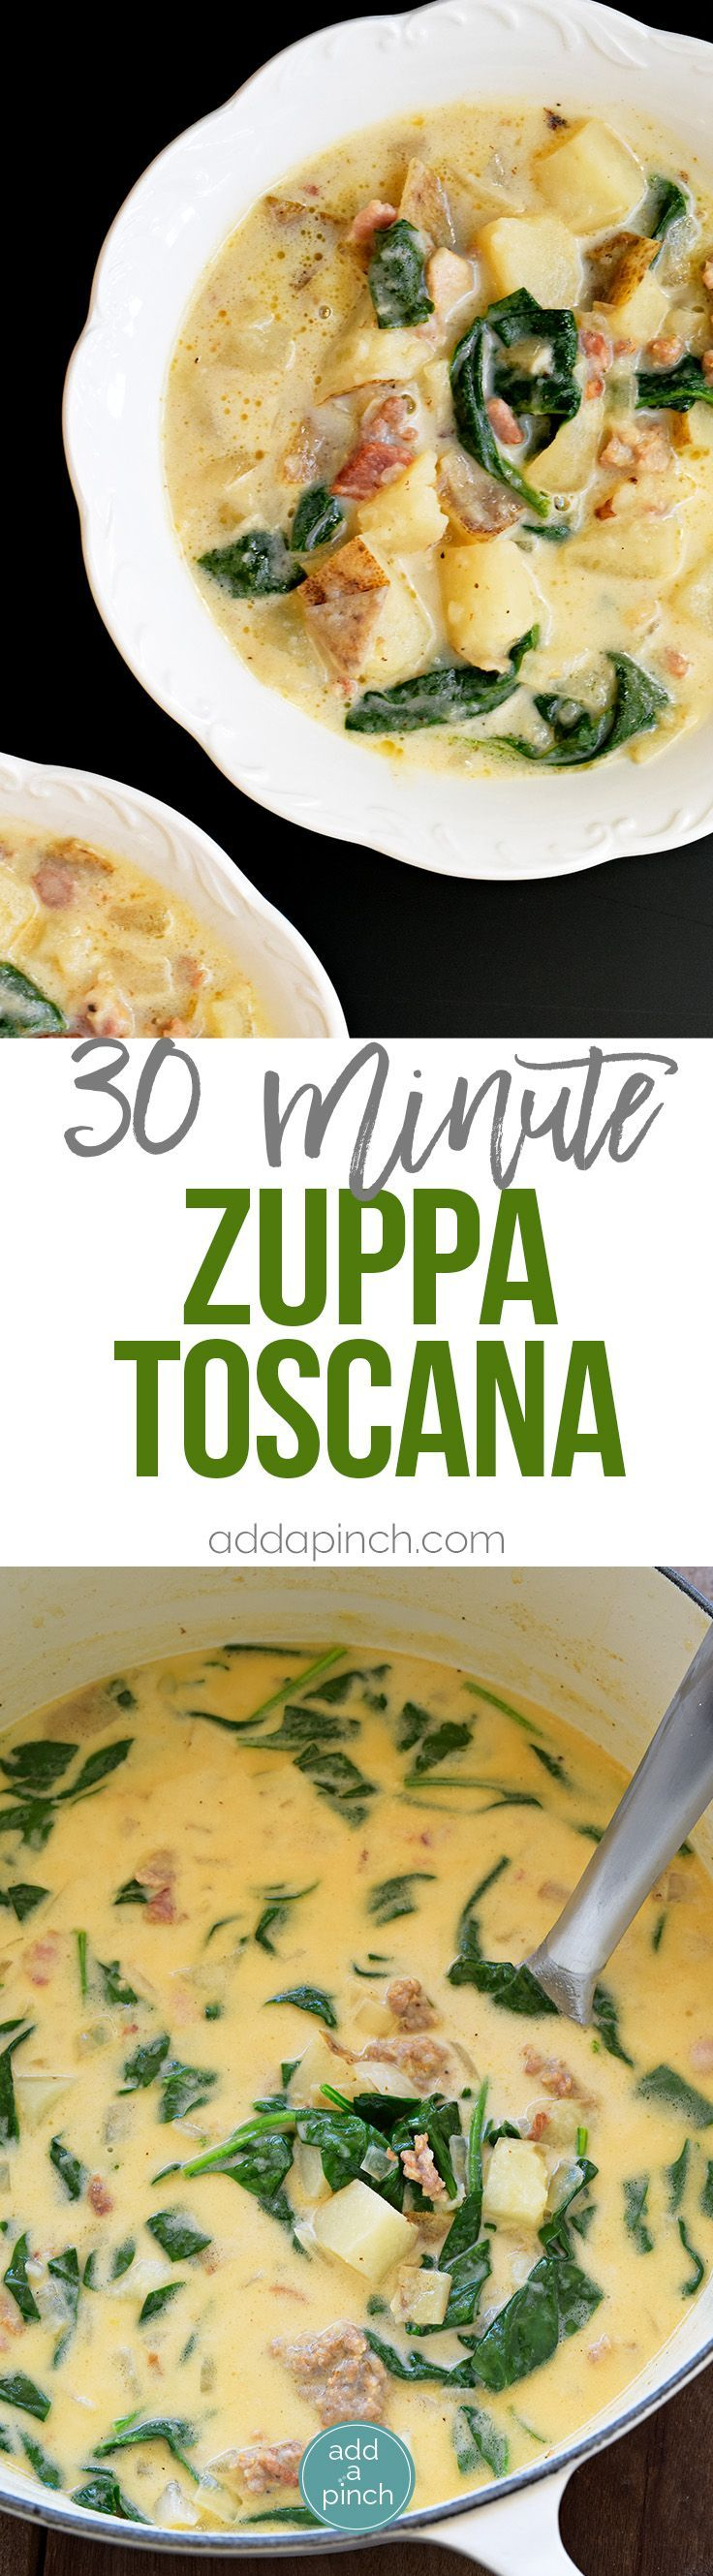 Zuppa Tuscana Recipe - This Zuppa Toscana recipe tastes just like the famous Olive Garden soup and is ready 30 minutes! // addapinch.com